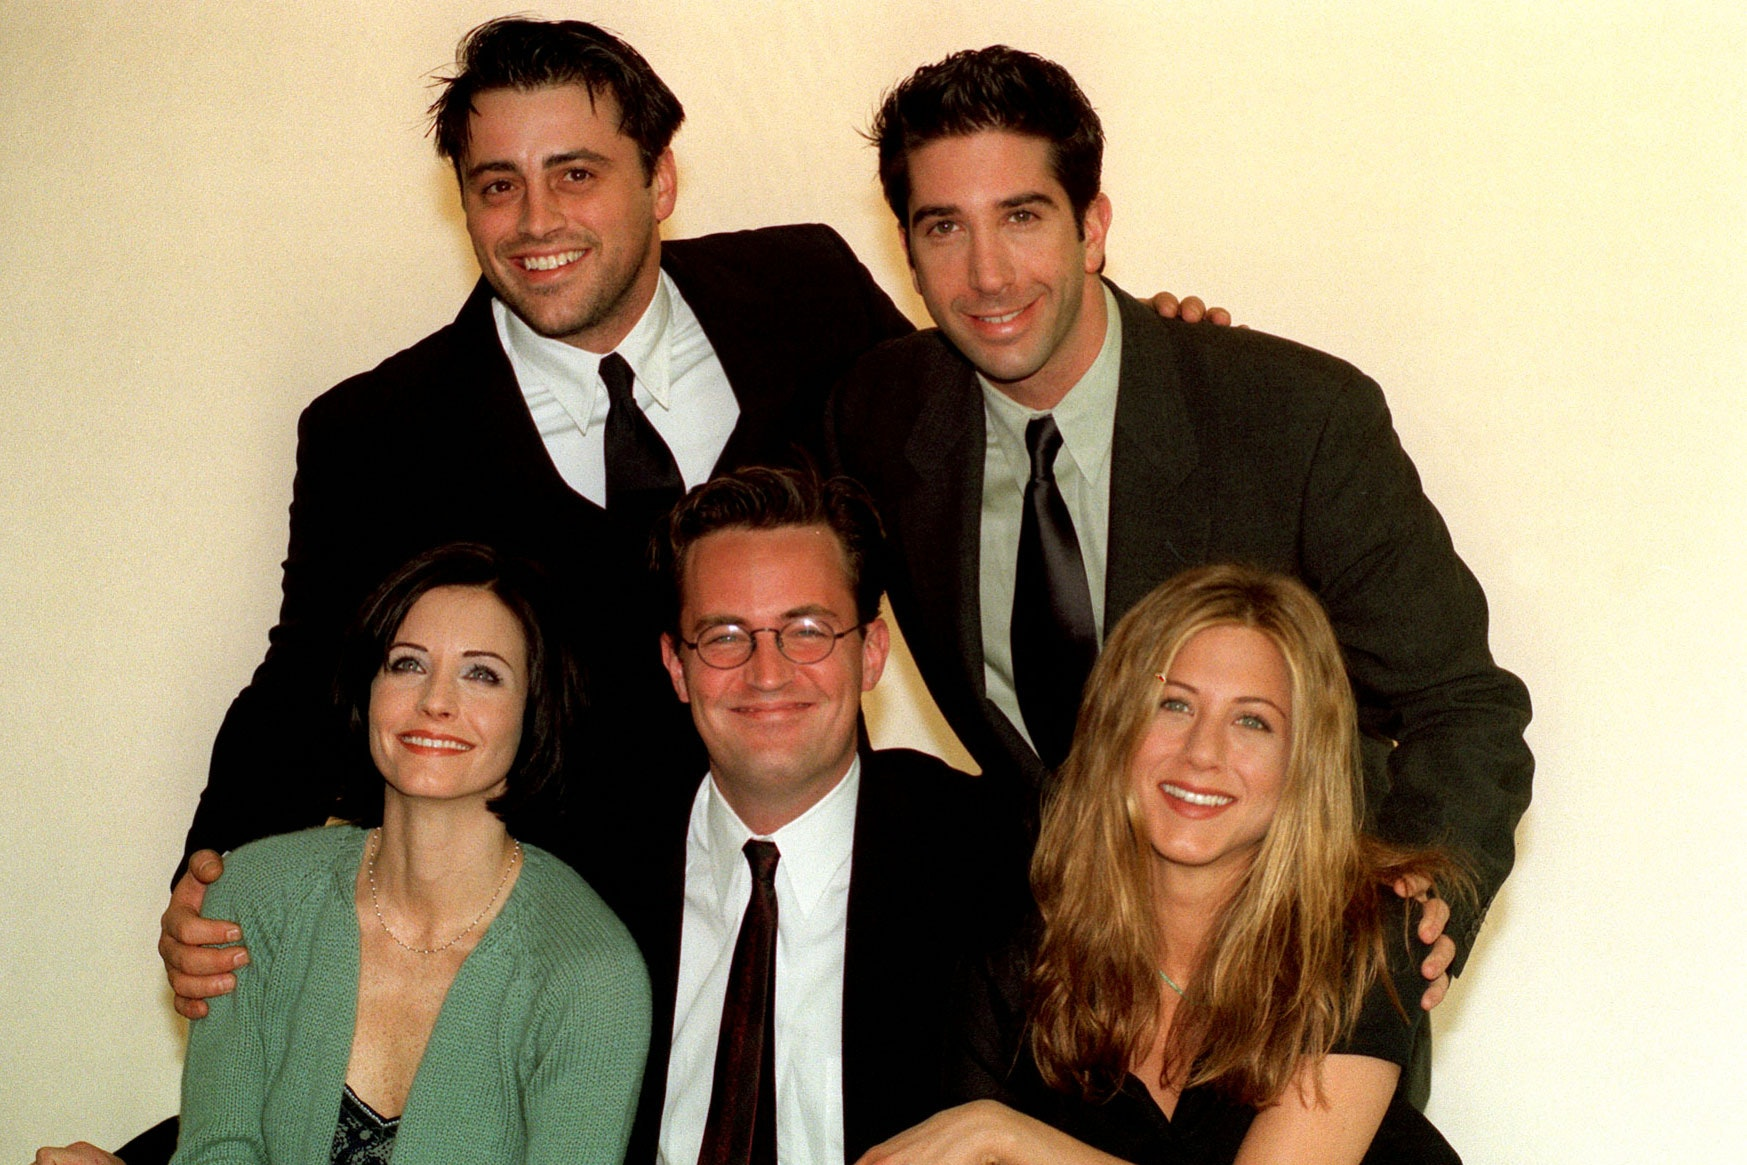 Friends fans rejoice as the show arrives on Netflix - showbiz news